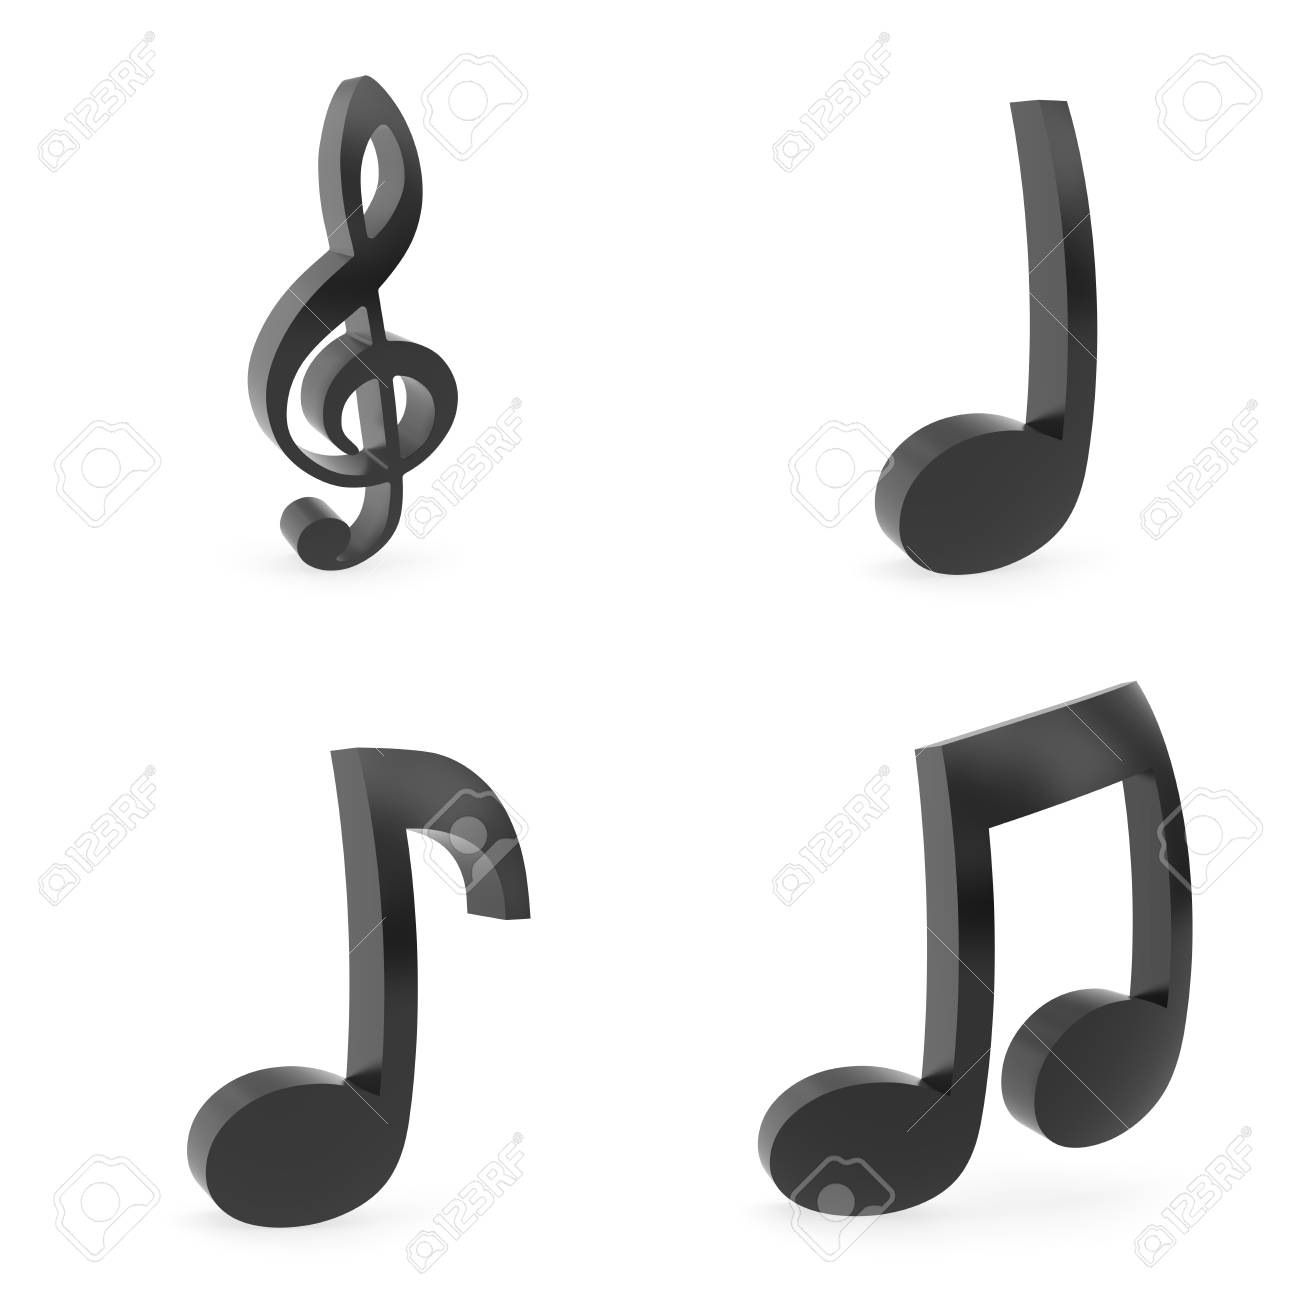 Curved music symbols rendered with soft shadows on white curved music symbols rendered with soft shadows on white background stock photo 94901810 buycottarizona Gallery